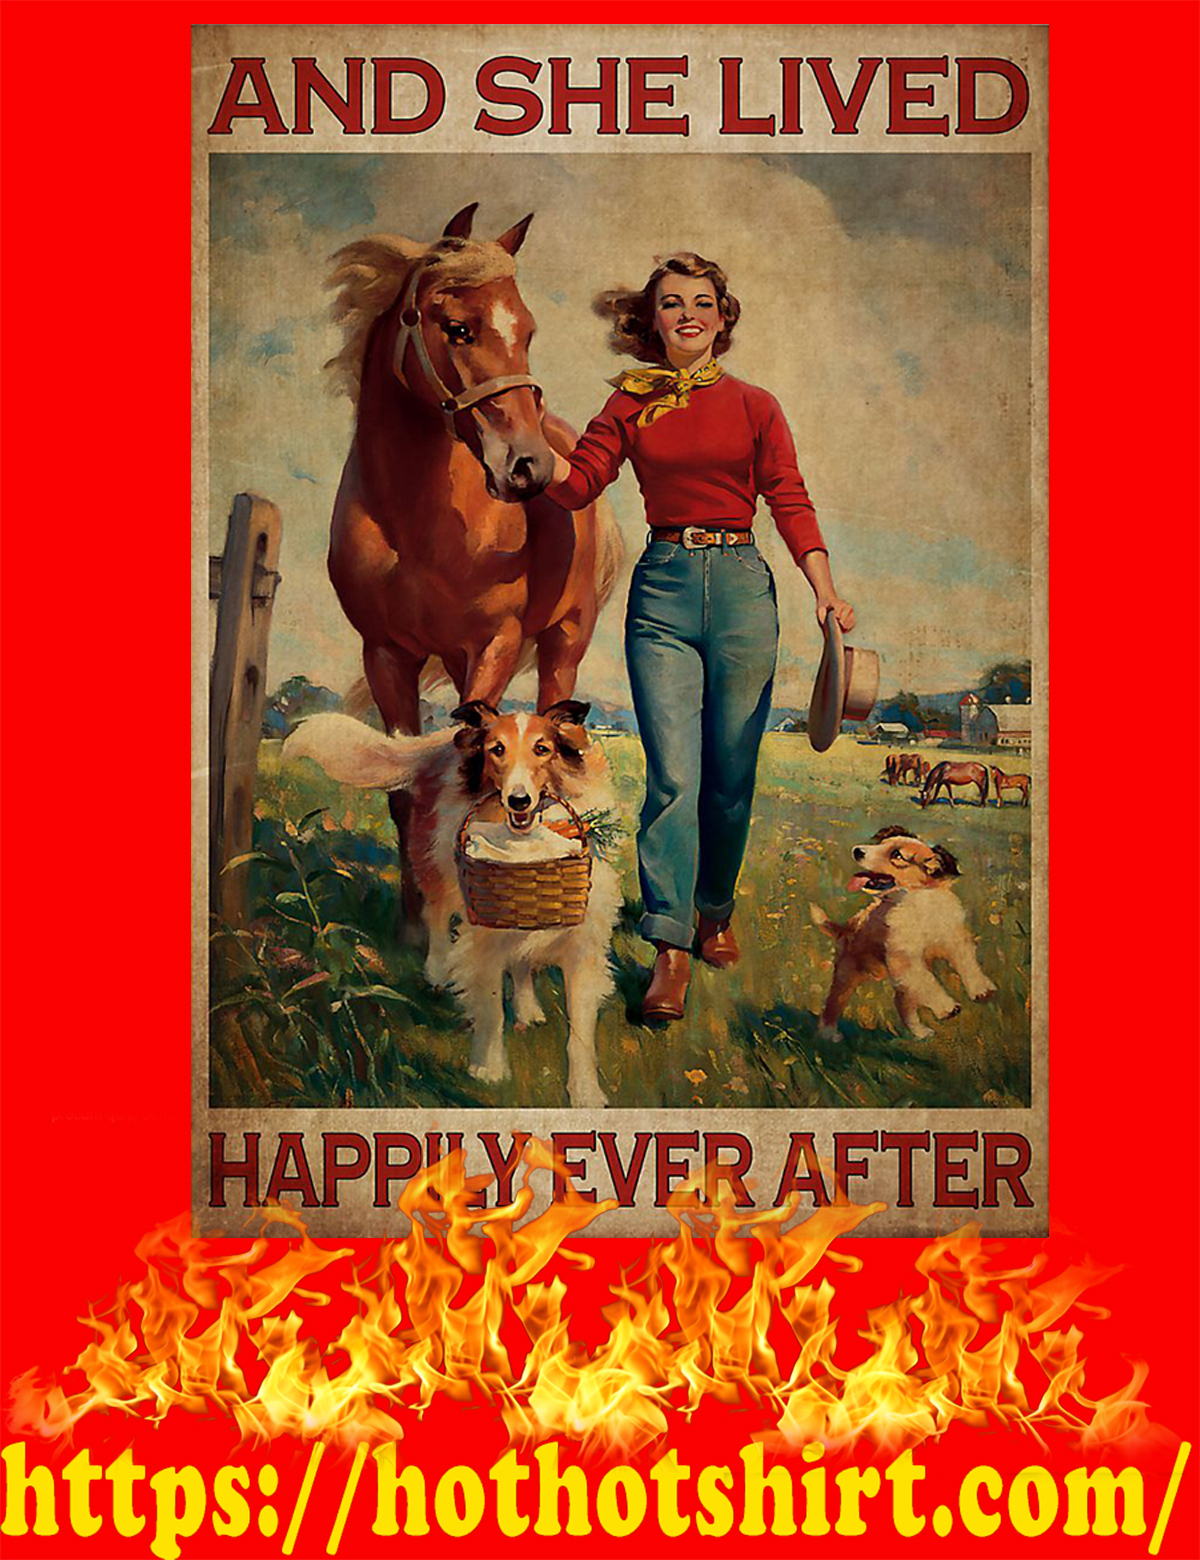 Horse and dog And she lived happily ever after poster - A4